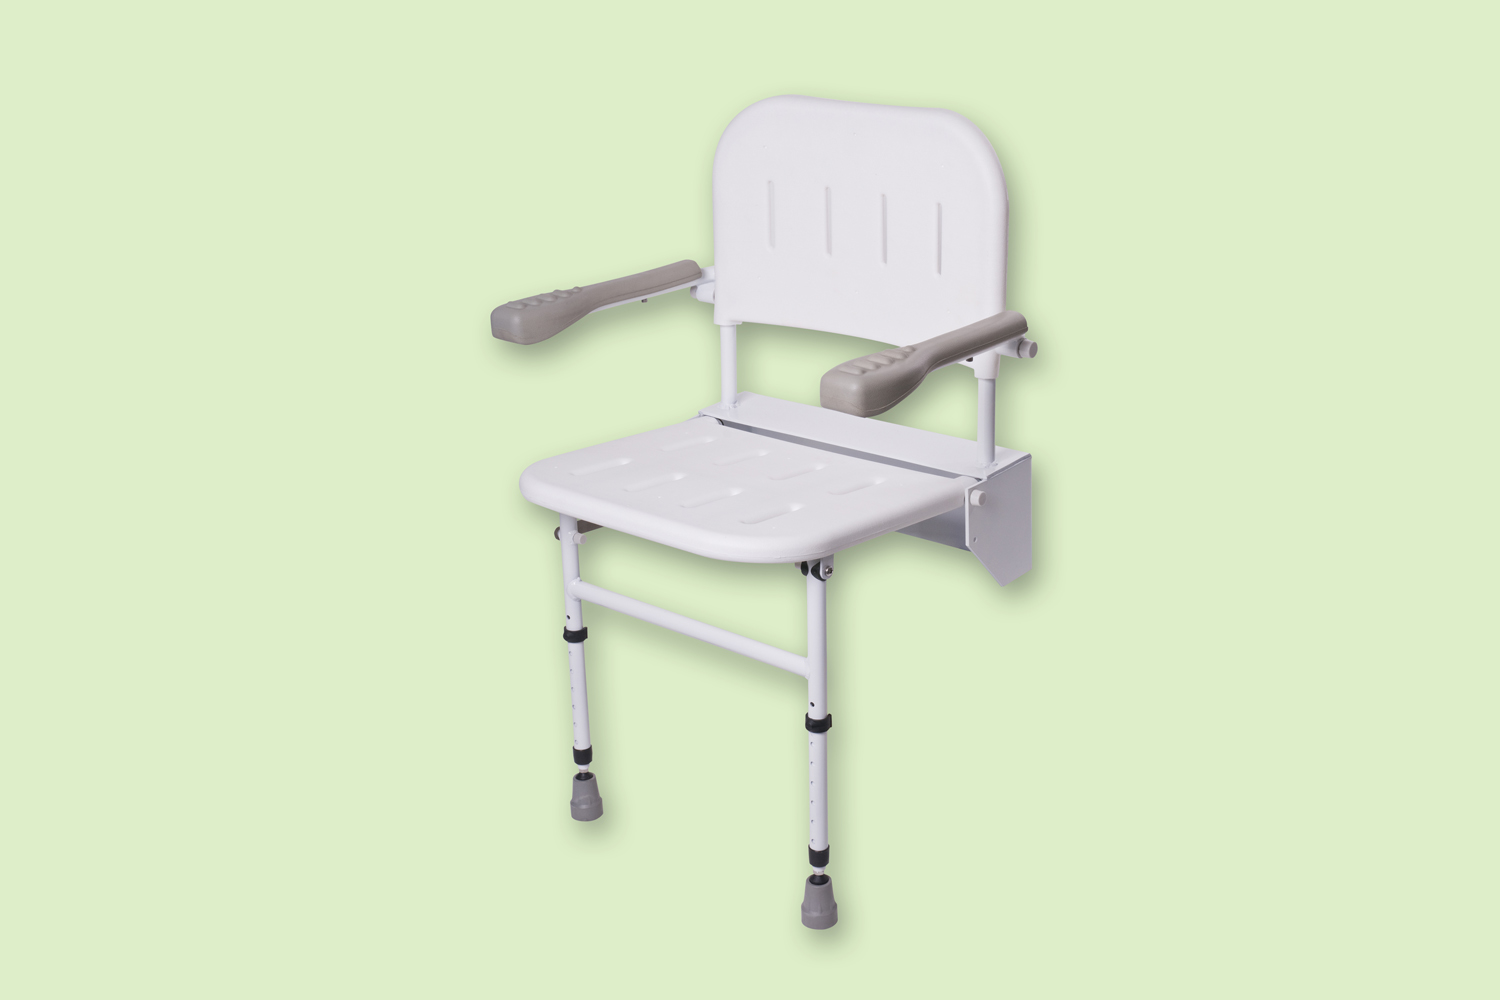 Dorable Shower Stool With Arms Image Collection Custom